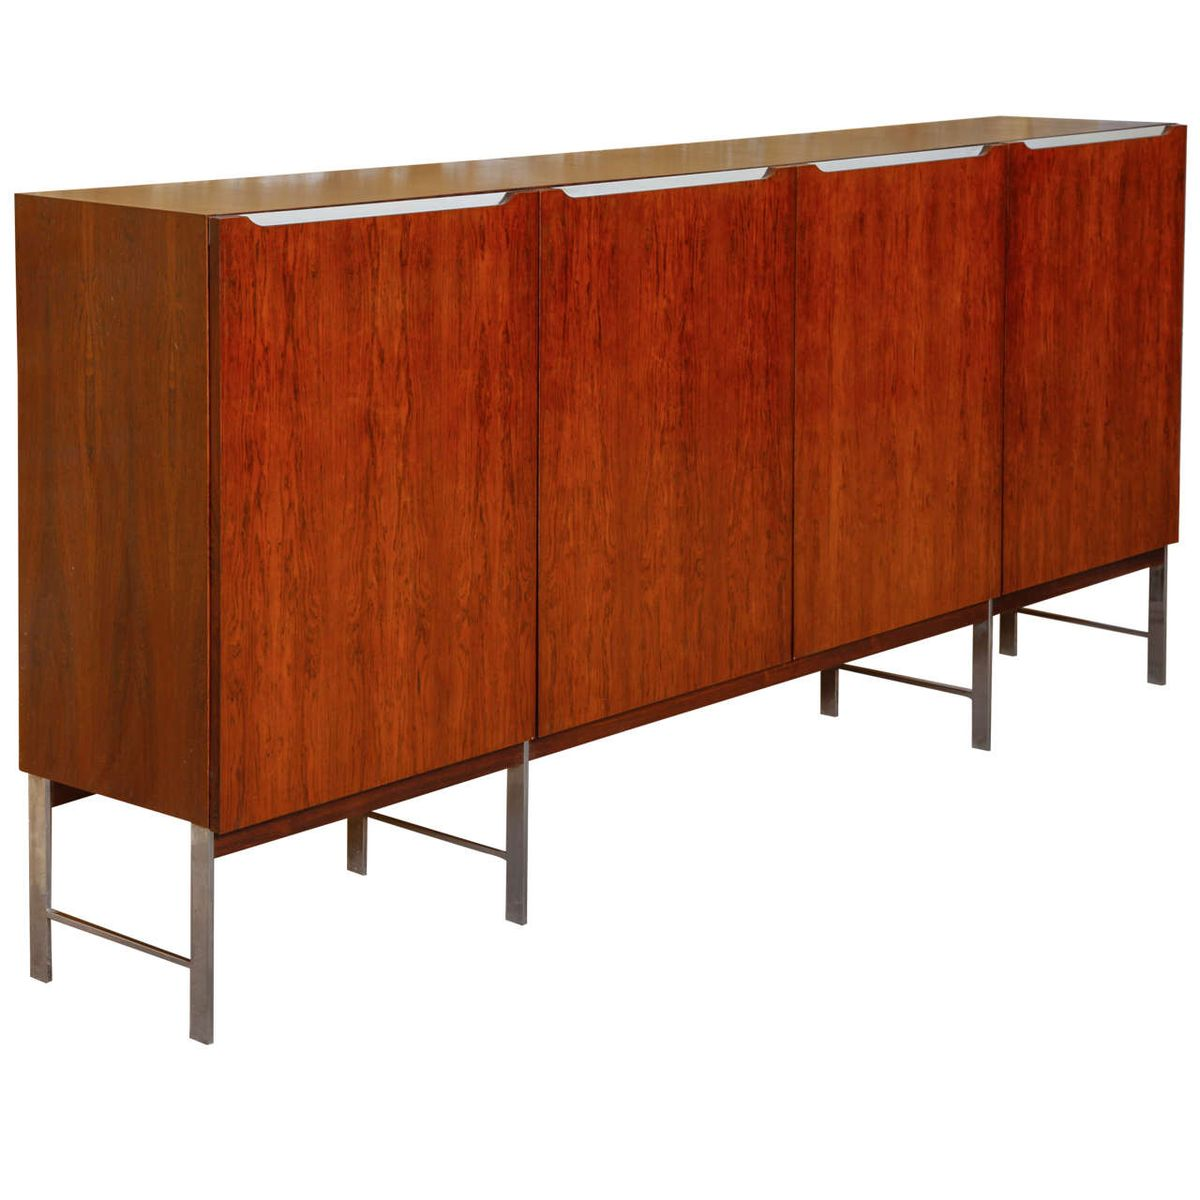 mid century rosewood sideboard by fristho 1960s for sale at pamono. Black Bedroom Furniture Sets. Home Design Ideas